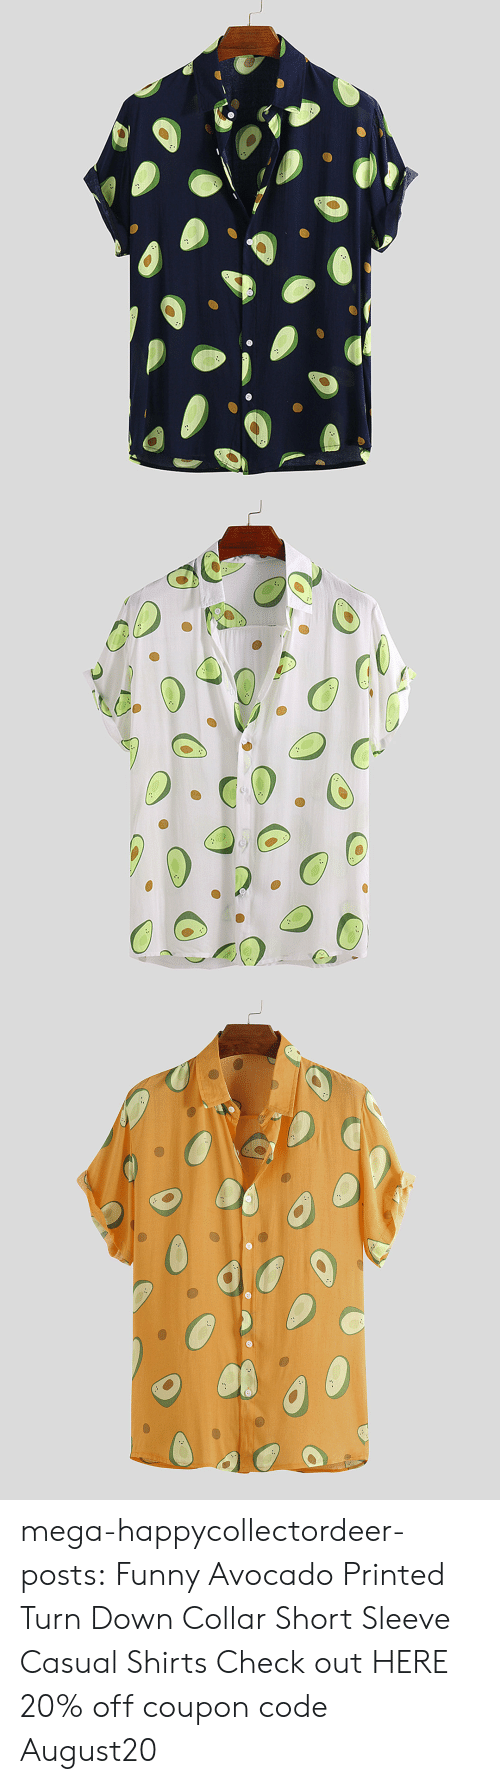 Mega: mega-happycollectordeer-posts:   Funny Avocado Printed Turn Down Collar Short Sleeve Casual Shirts   Check out HERE 20% off coupon code:August20